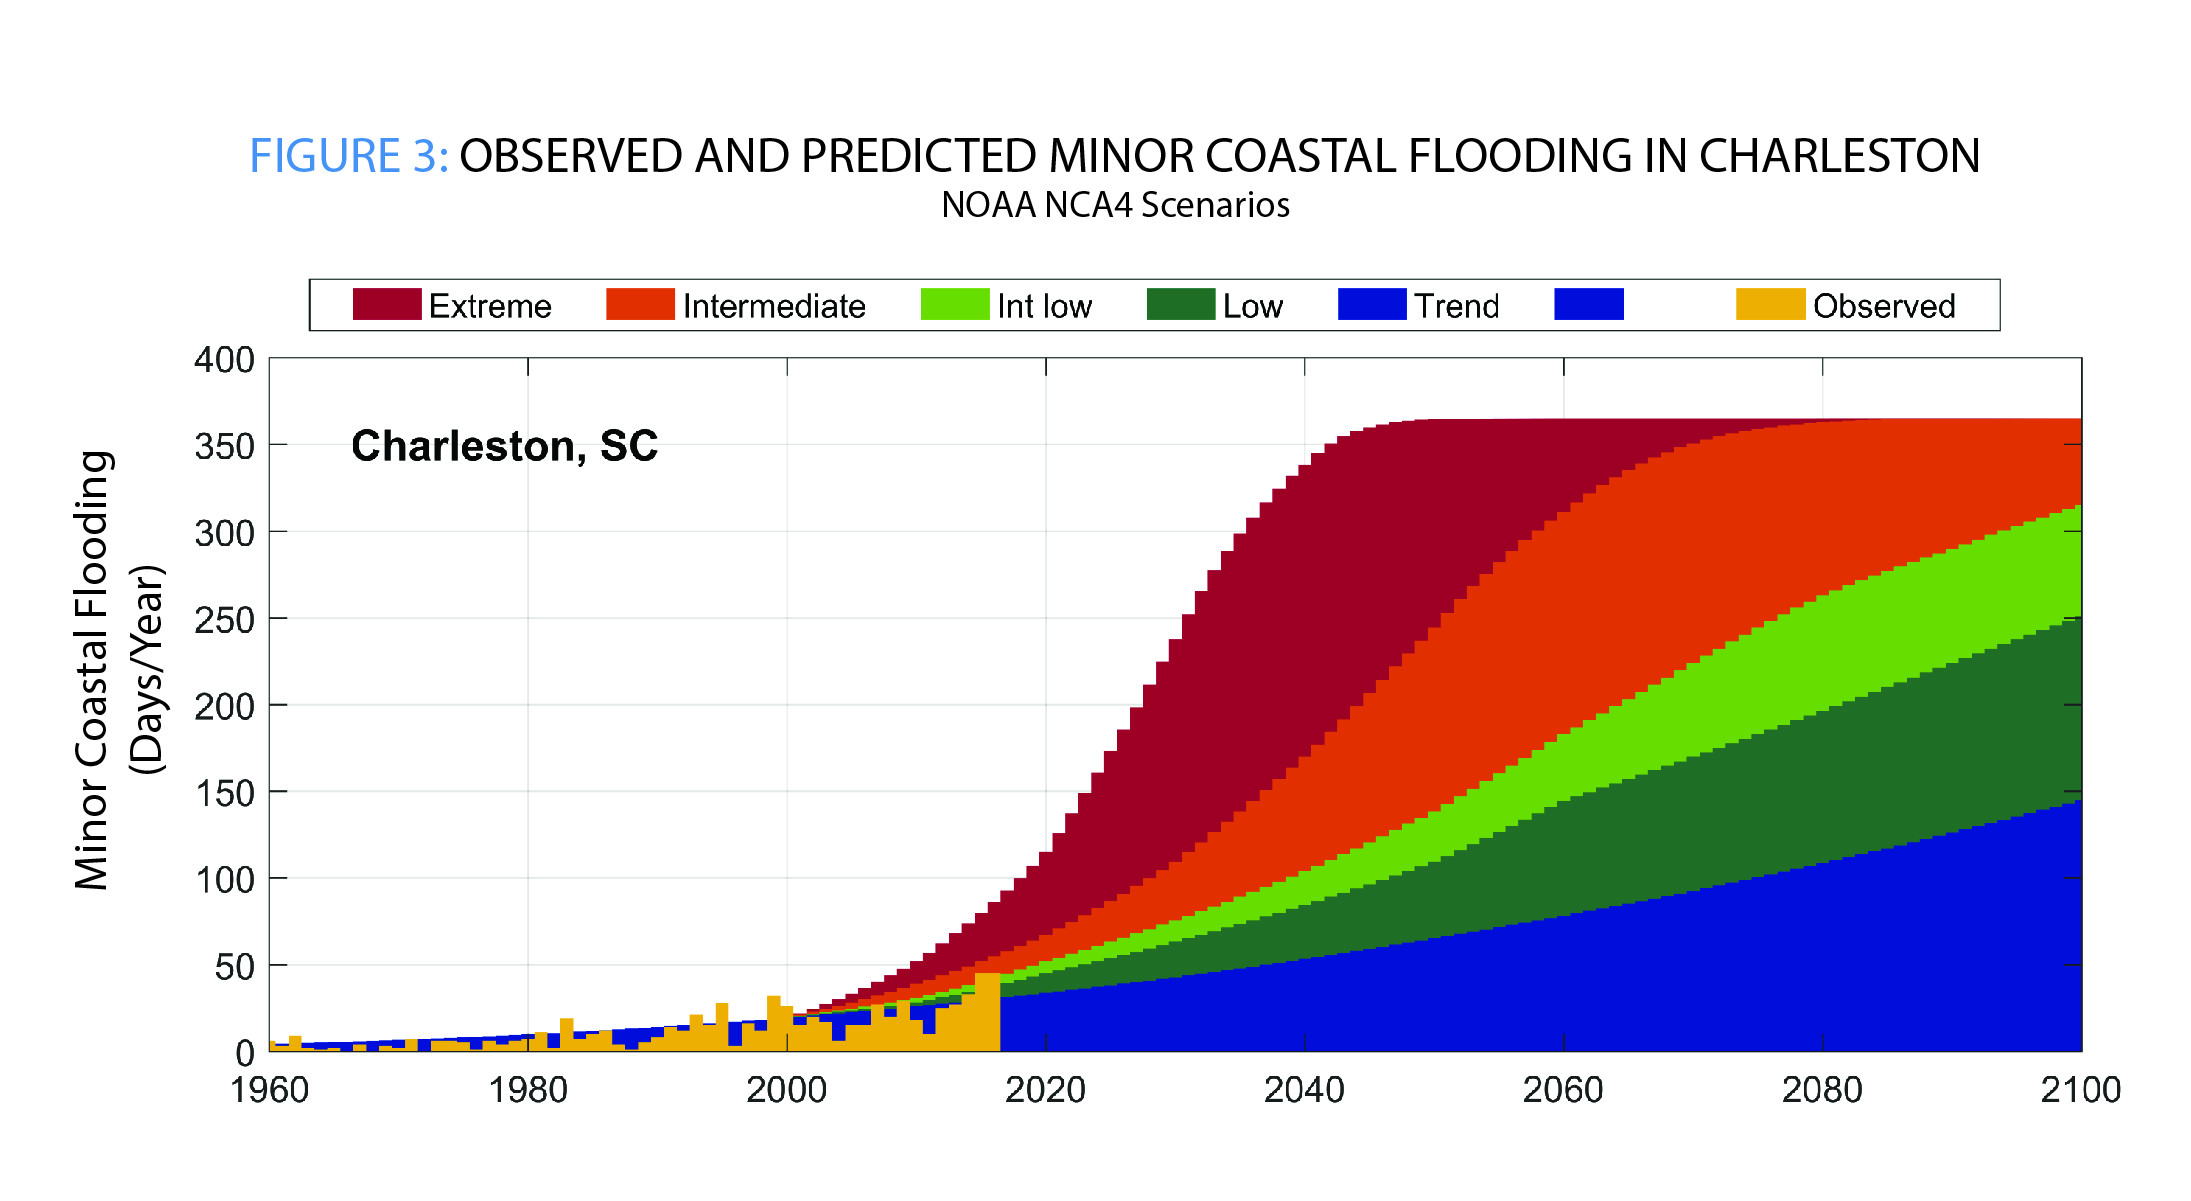 Figure 3 Observed and Predicted Minor Coastal Flooding in Charleston NCA4 Scenarios